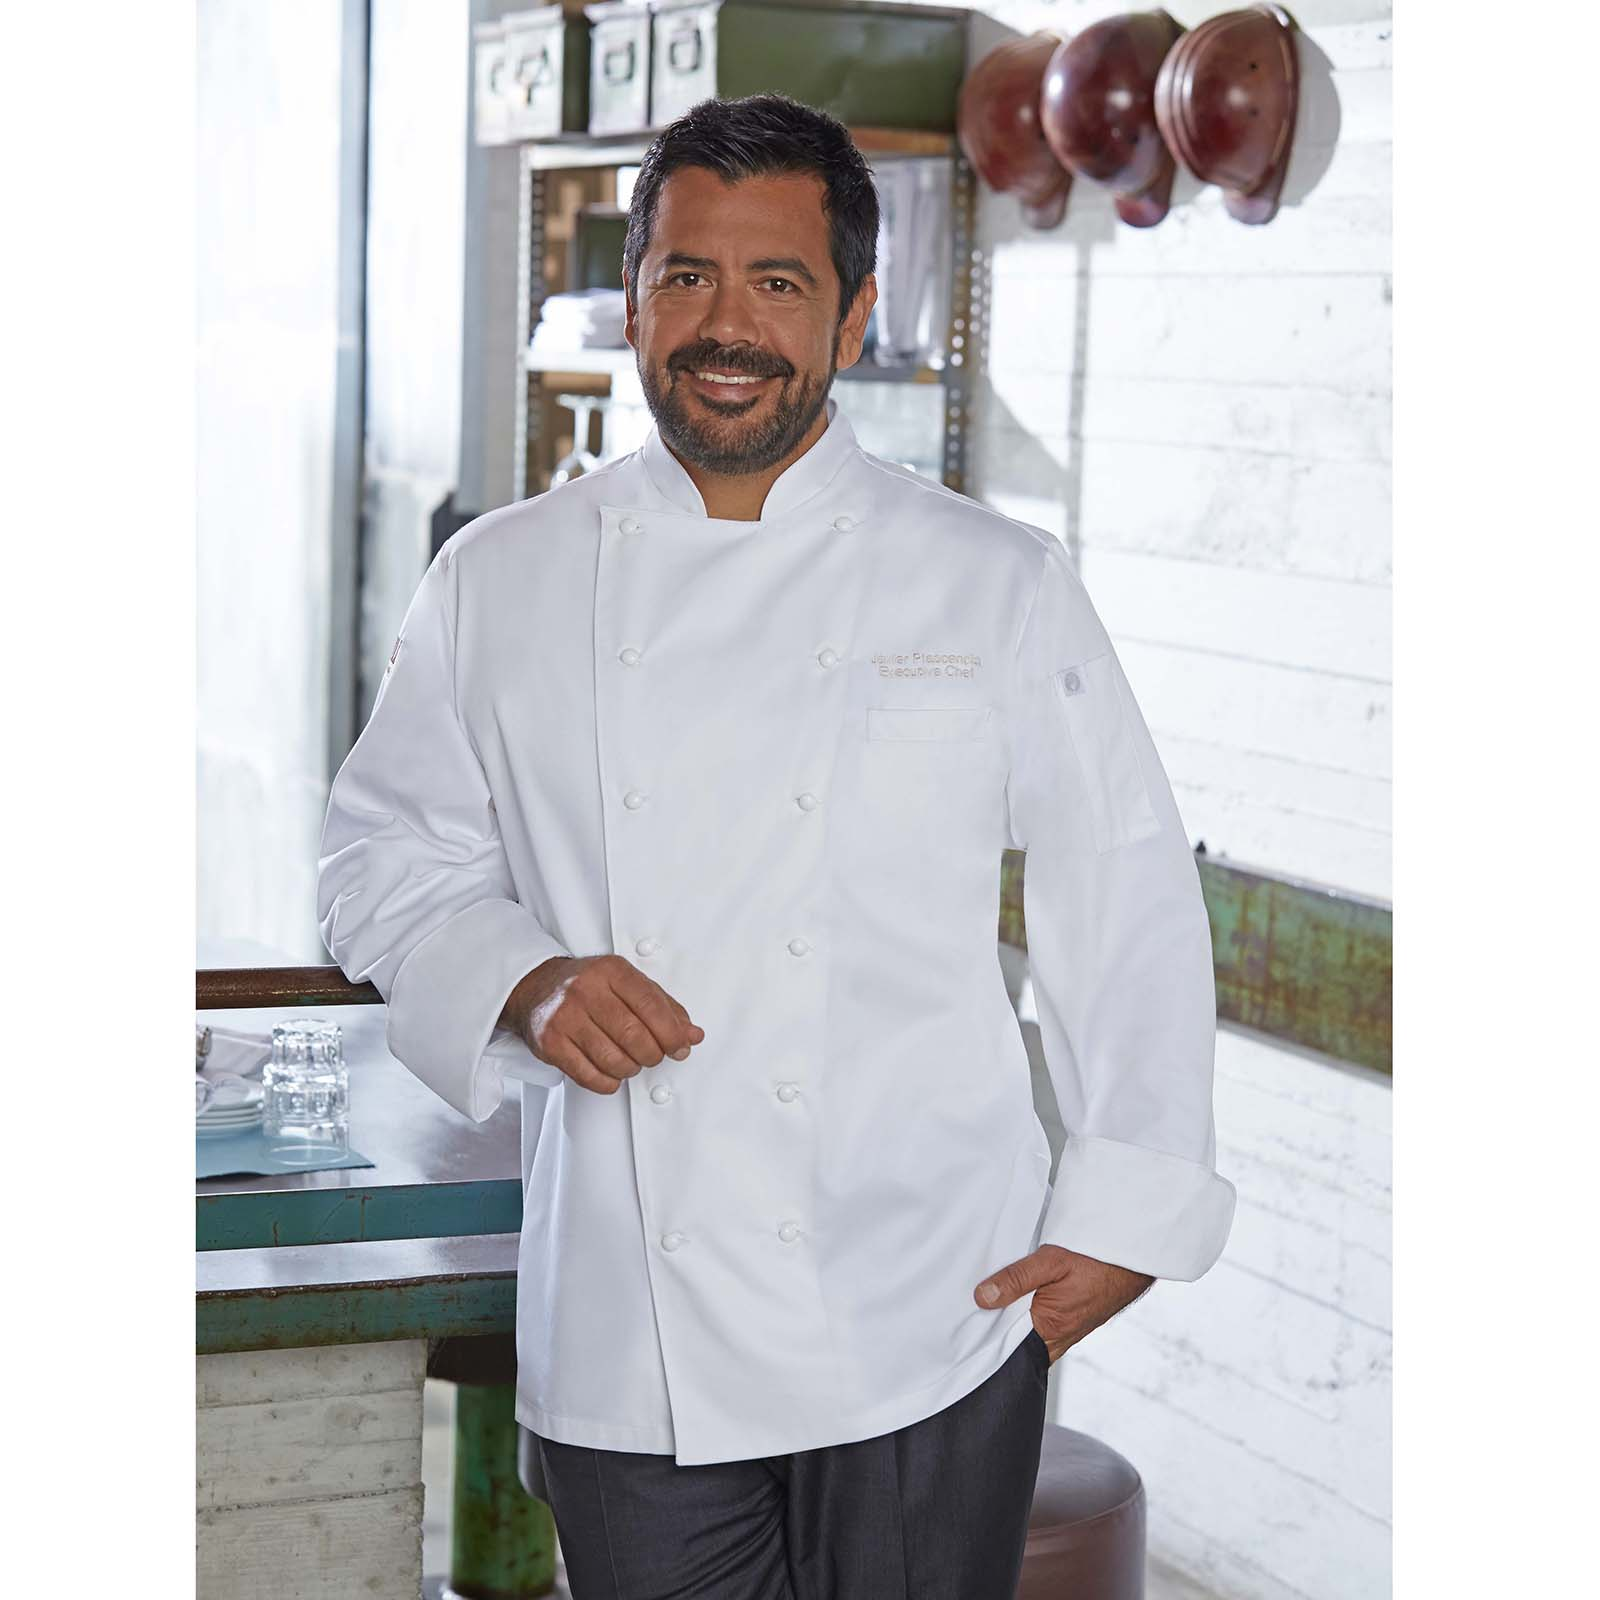 Chef Works SE52WHTXL chef's coat